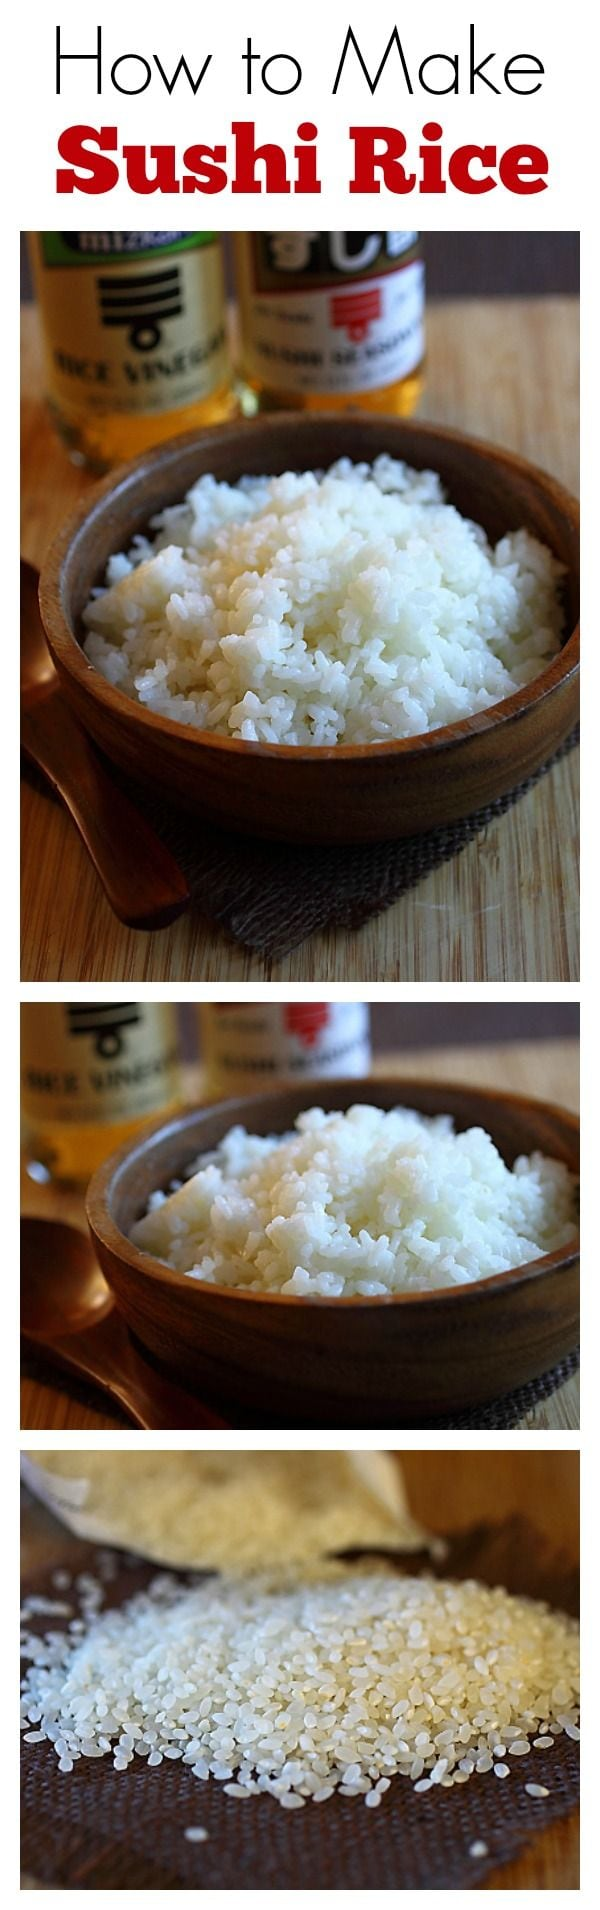 how to make sushi rice with this easy sushi rice recipe. Sushi rice ...